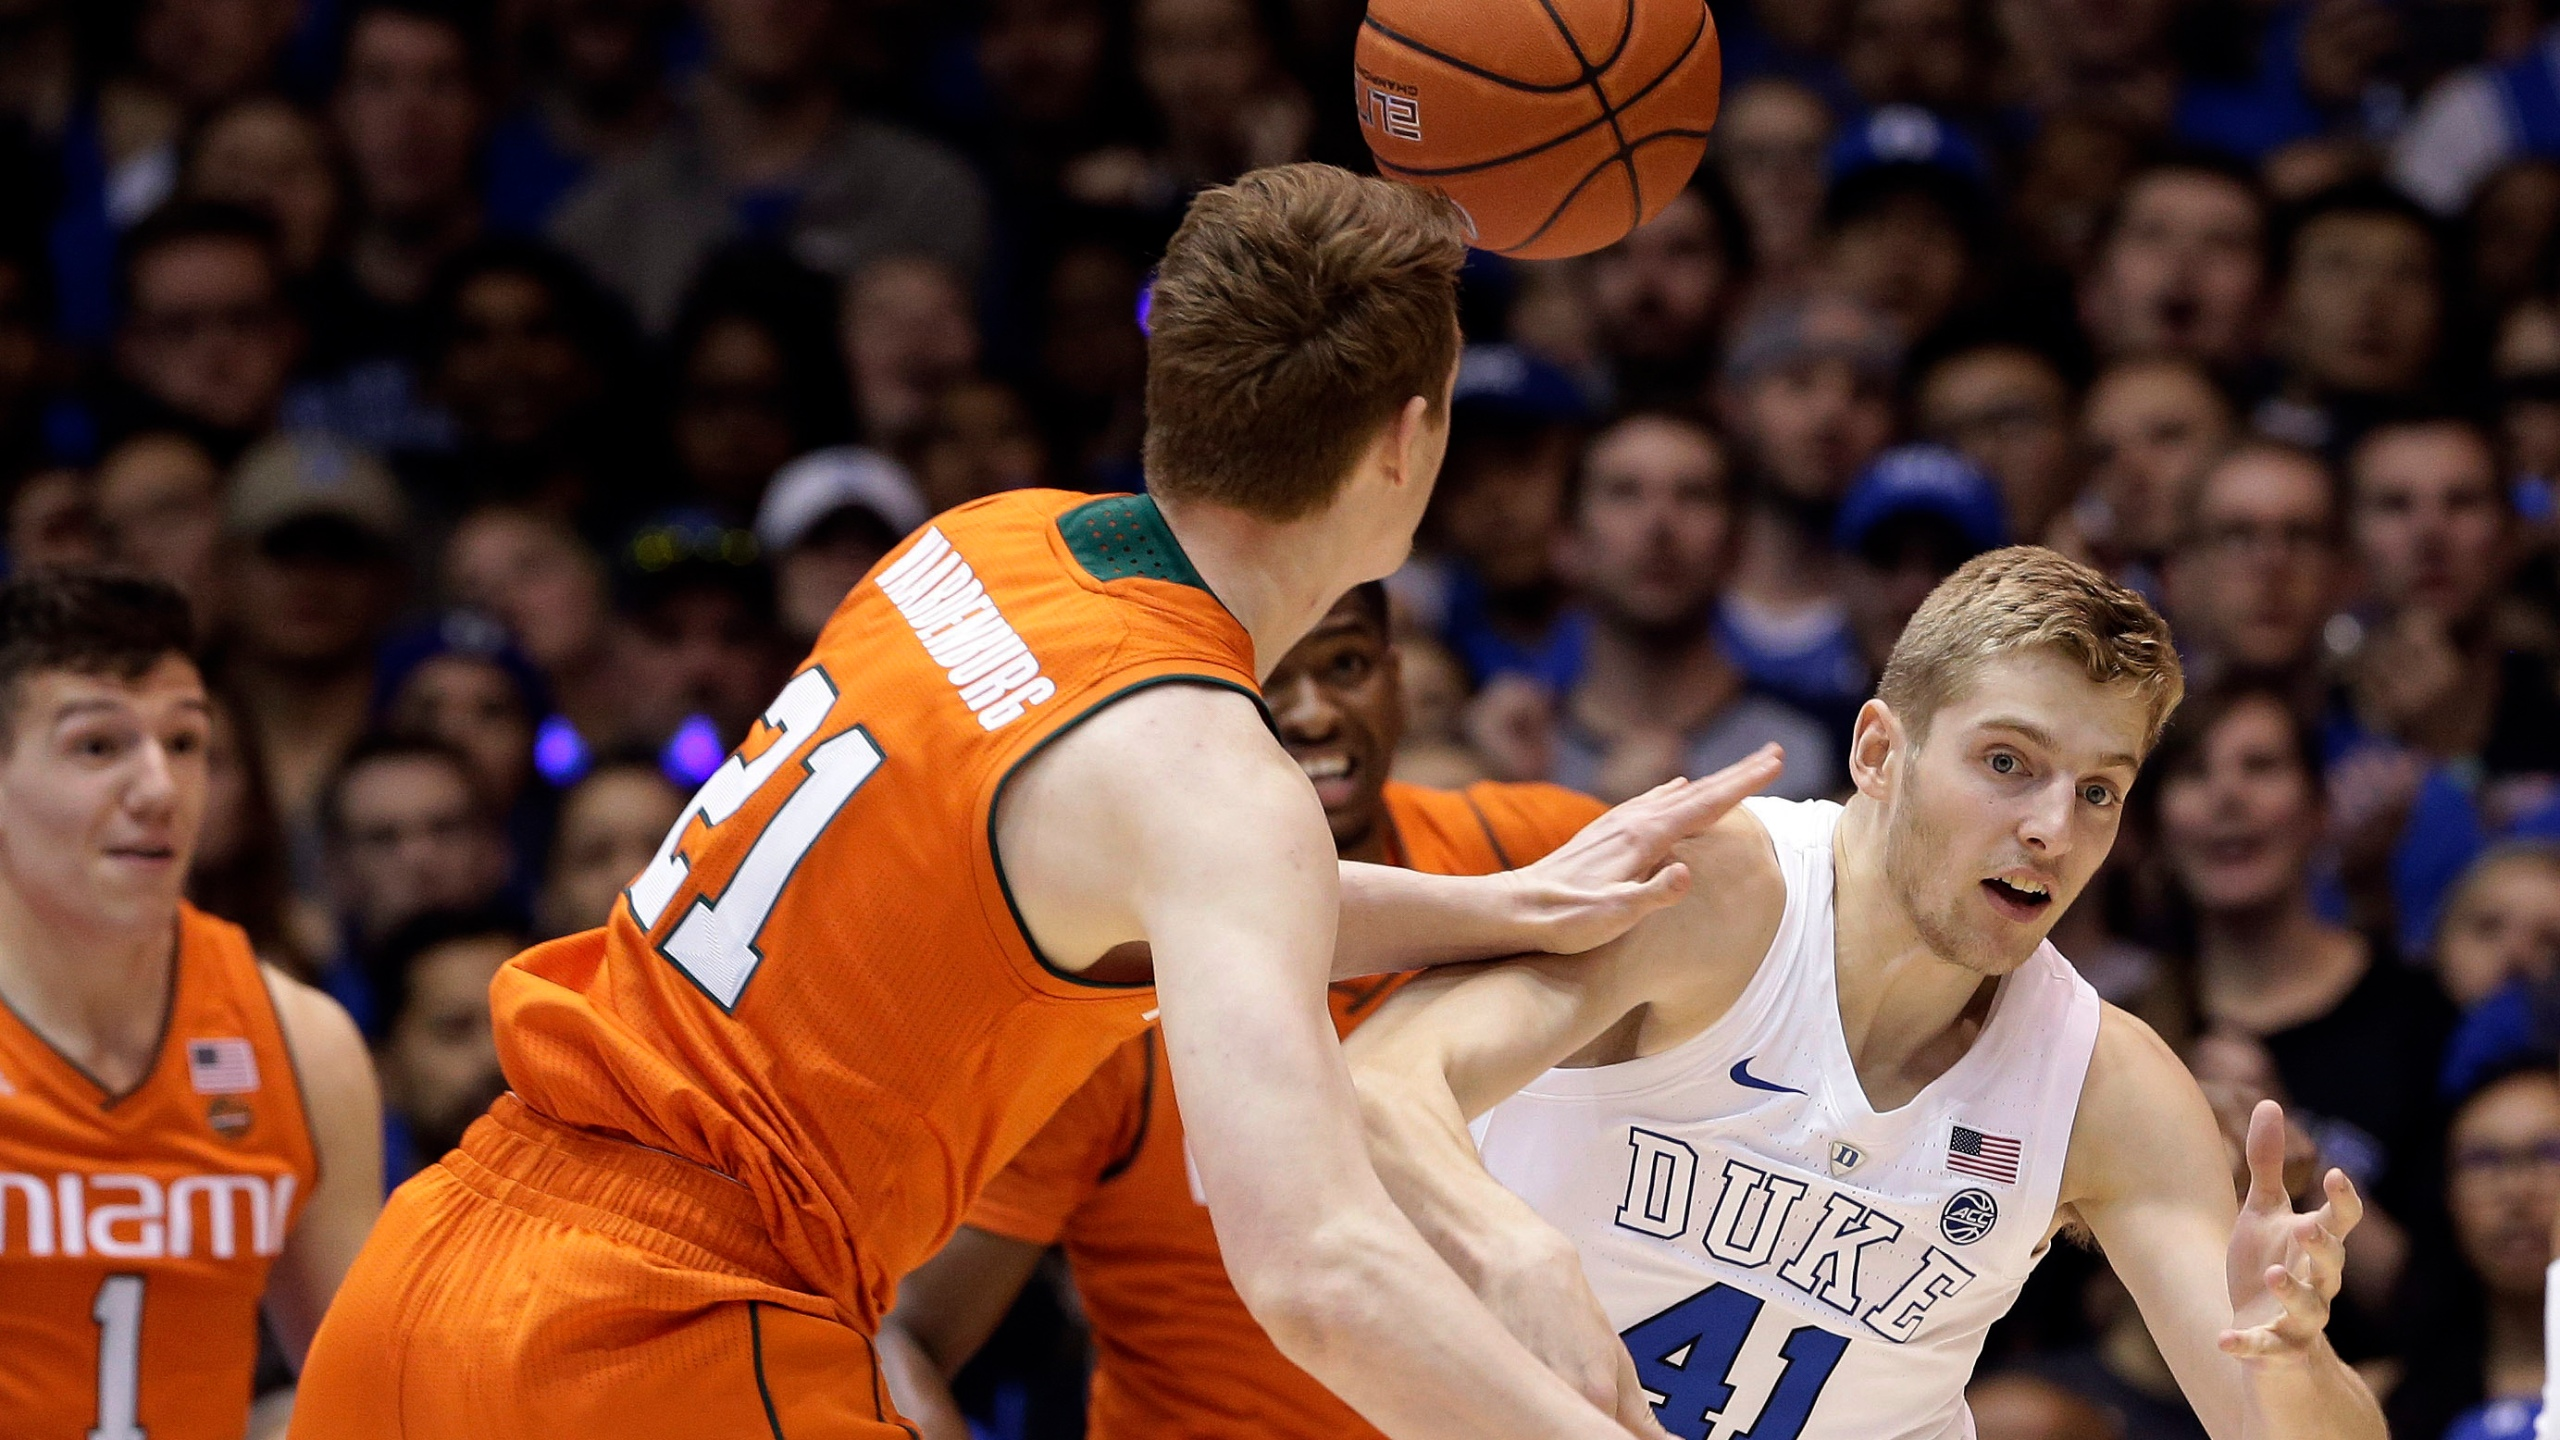 Miami_Duke_Basketball_80112-159532.jpg54781567